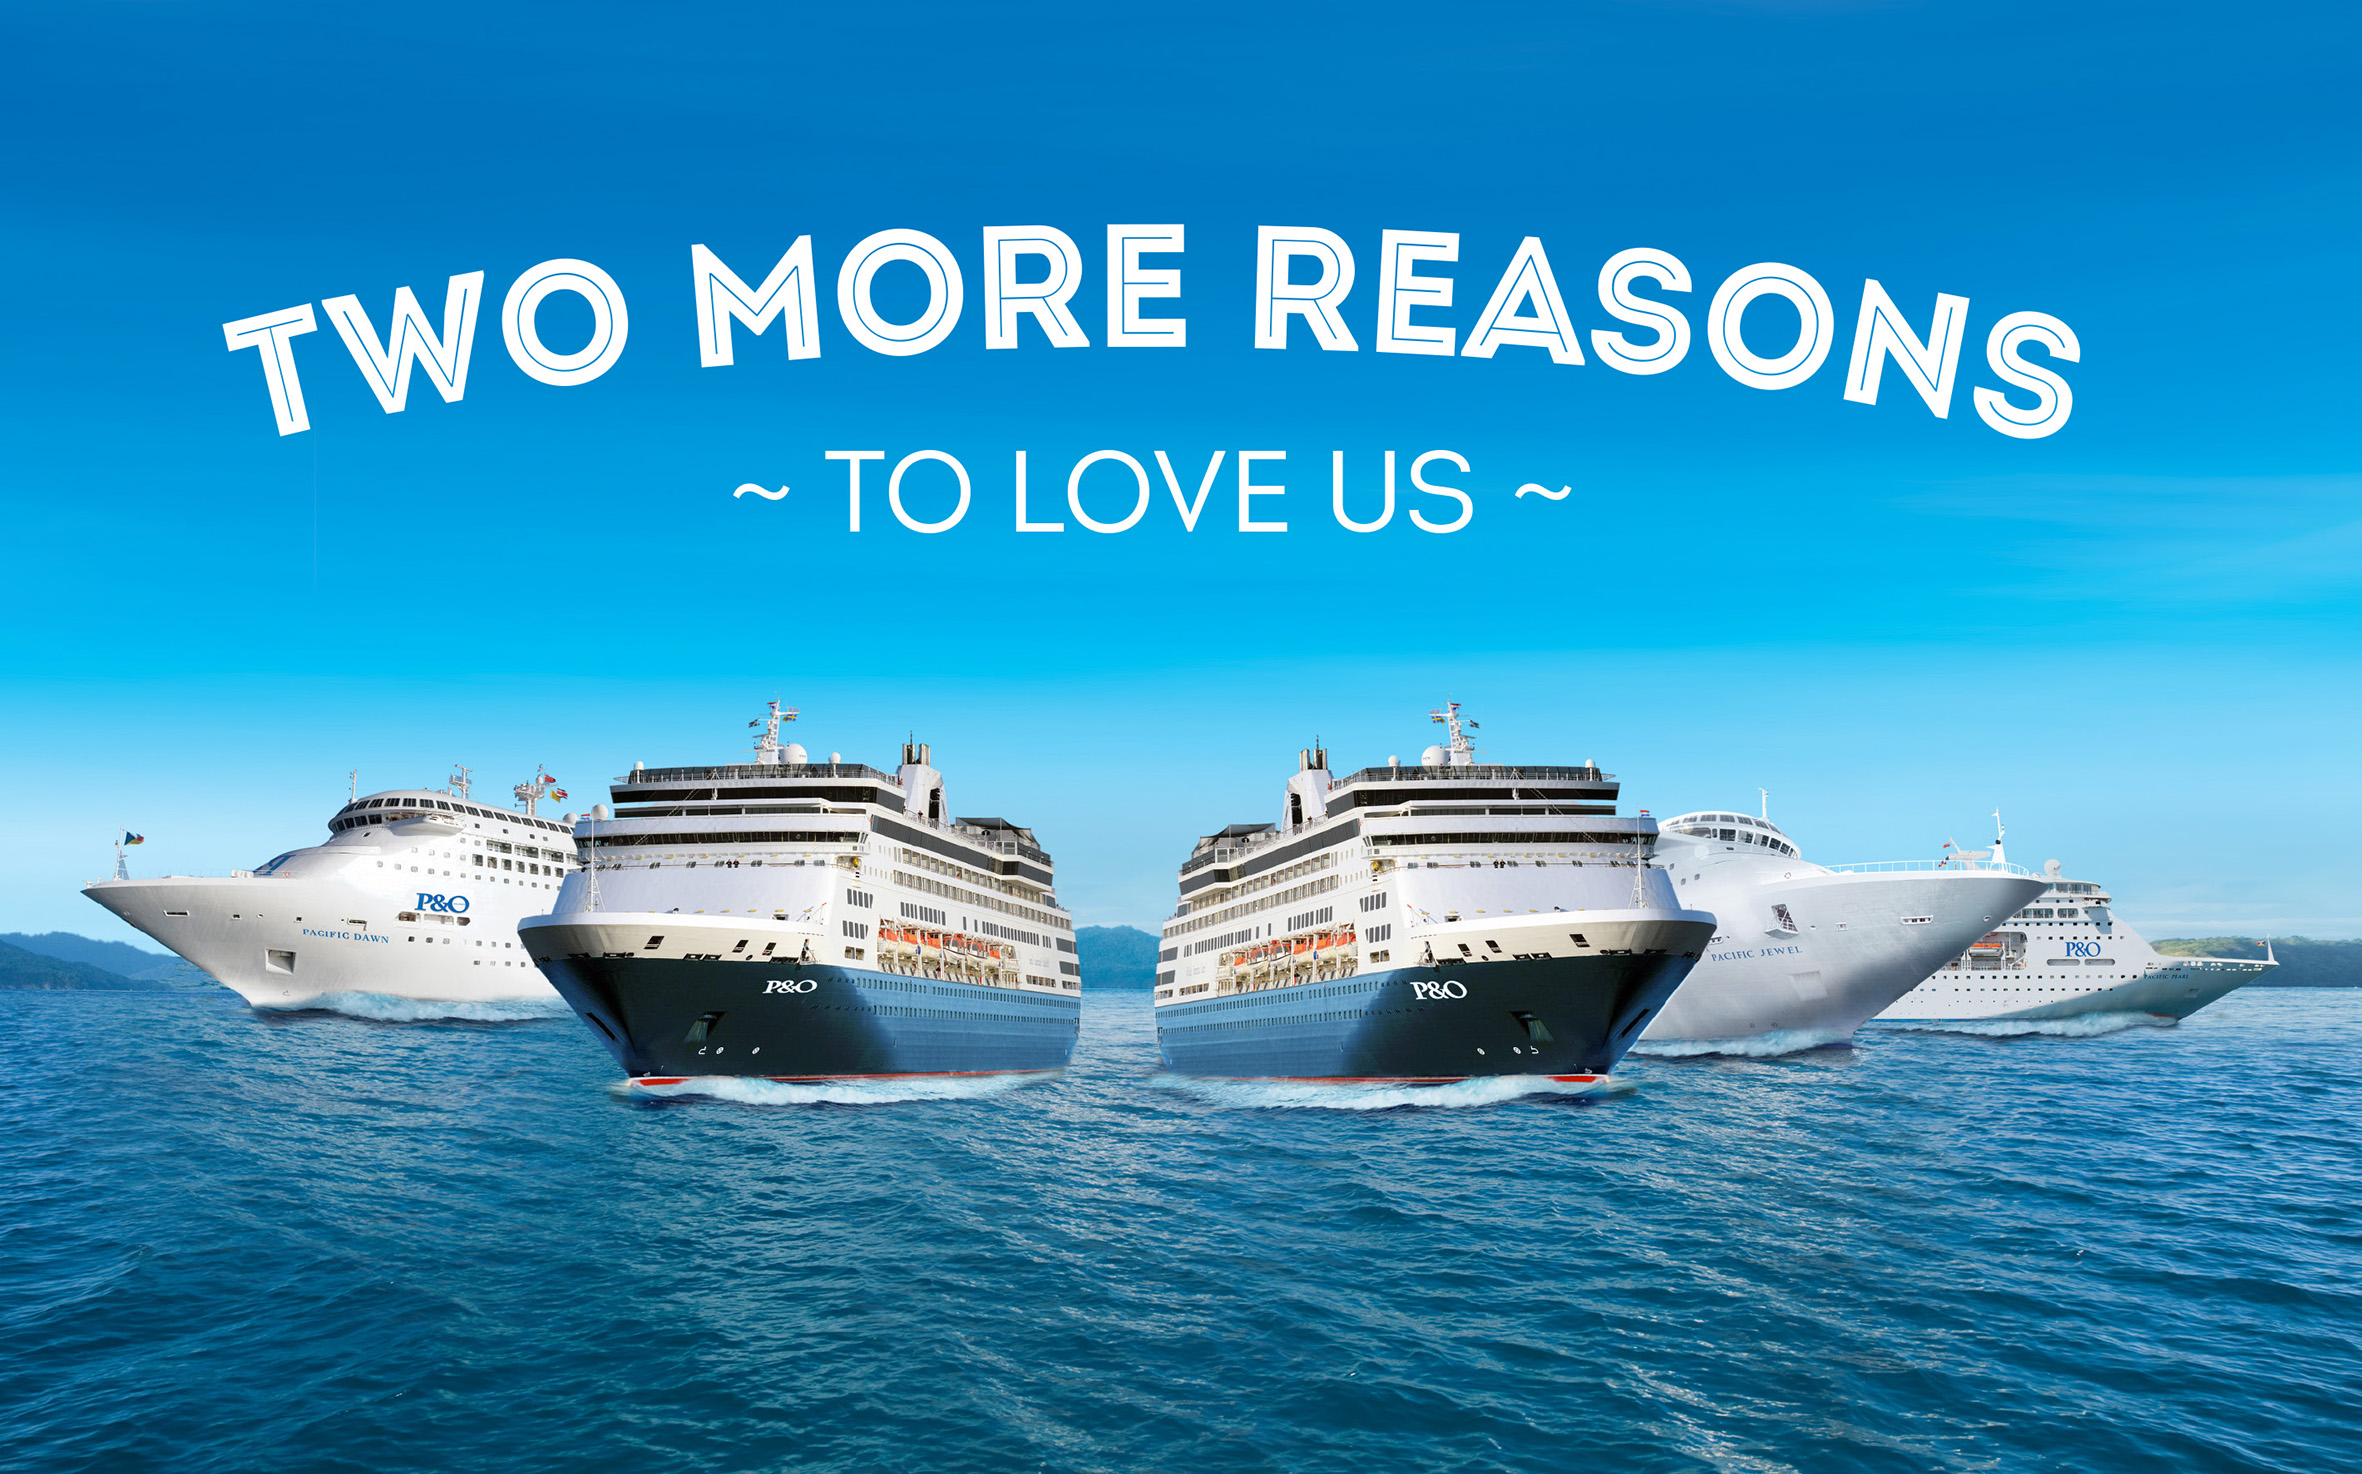 BREAKING NEWS – MORE SHIPS TO BE ADDED TO P&O CRUISES FLEET